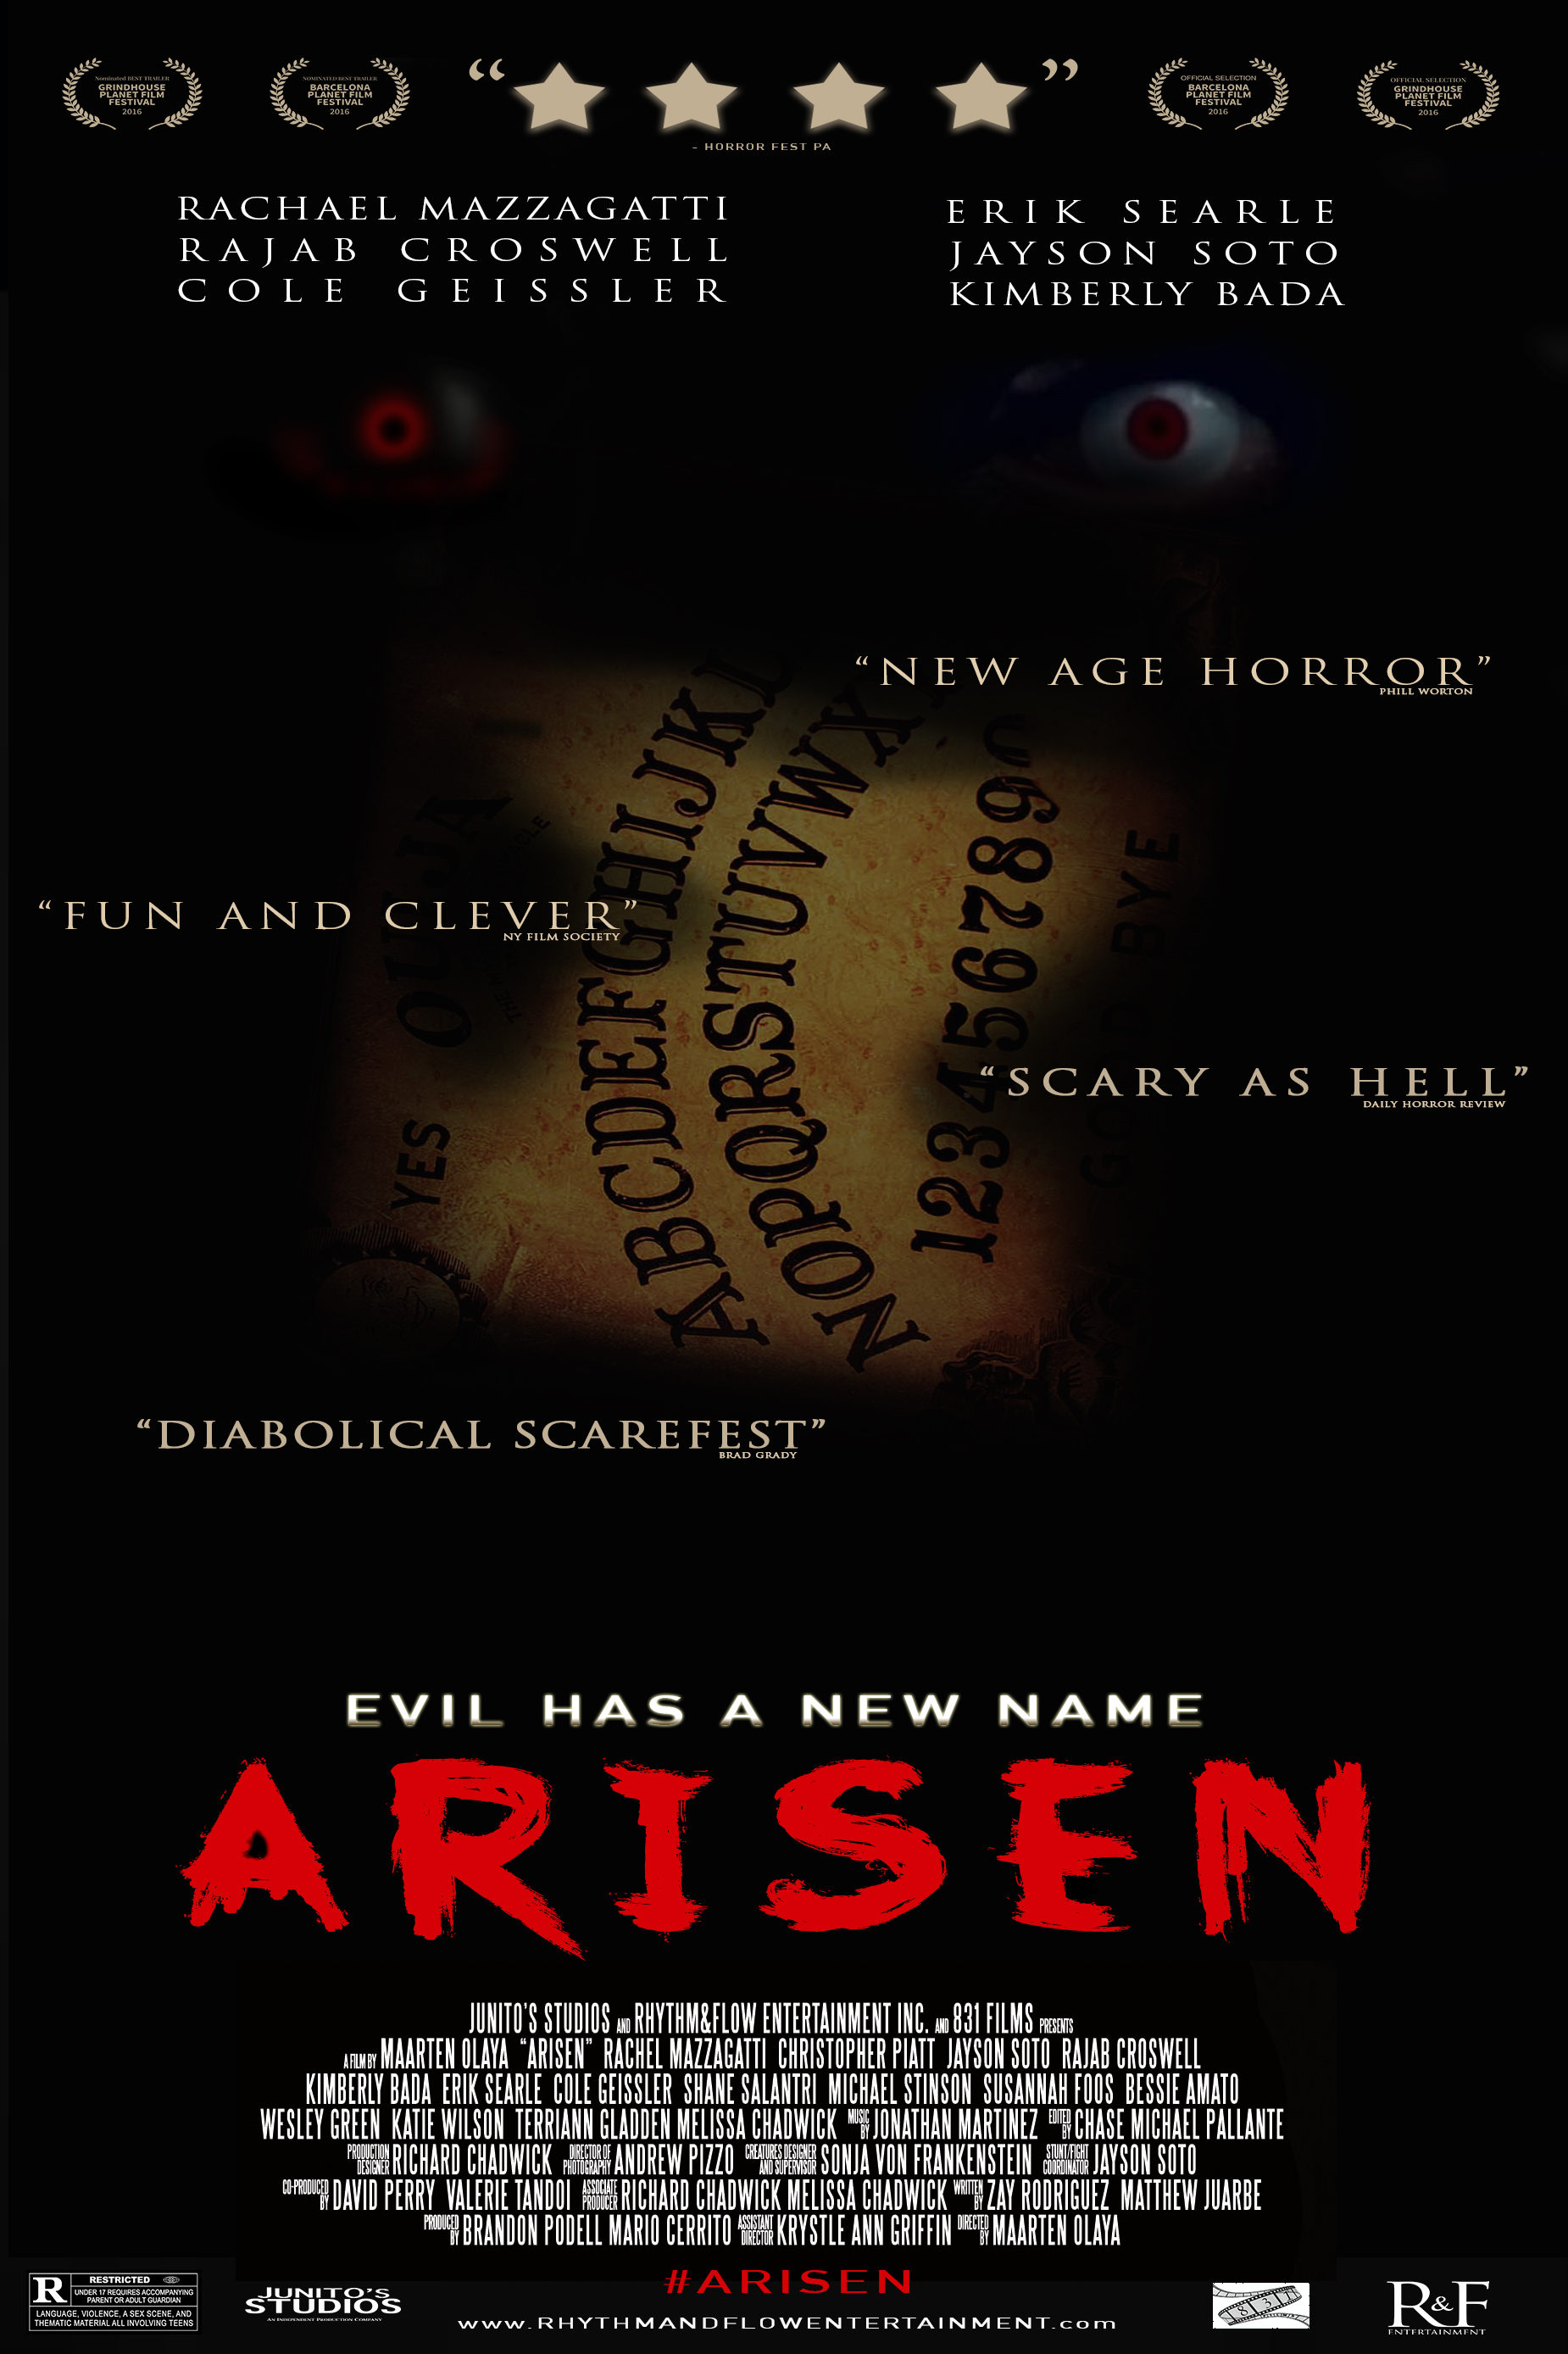 ARISEN OFFICIAL MOVIE POSTER RFE ENTERTAINMENT